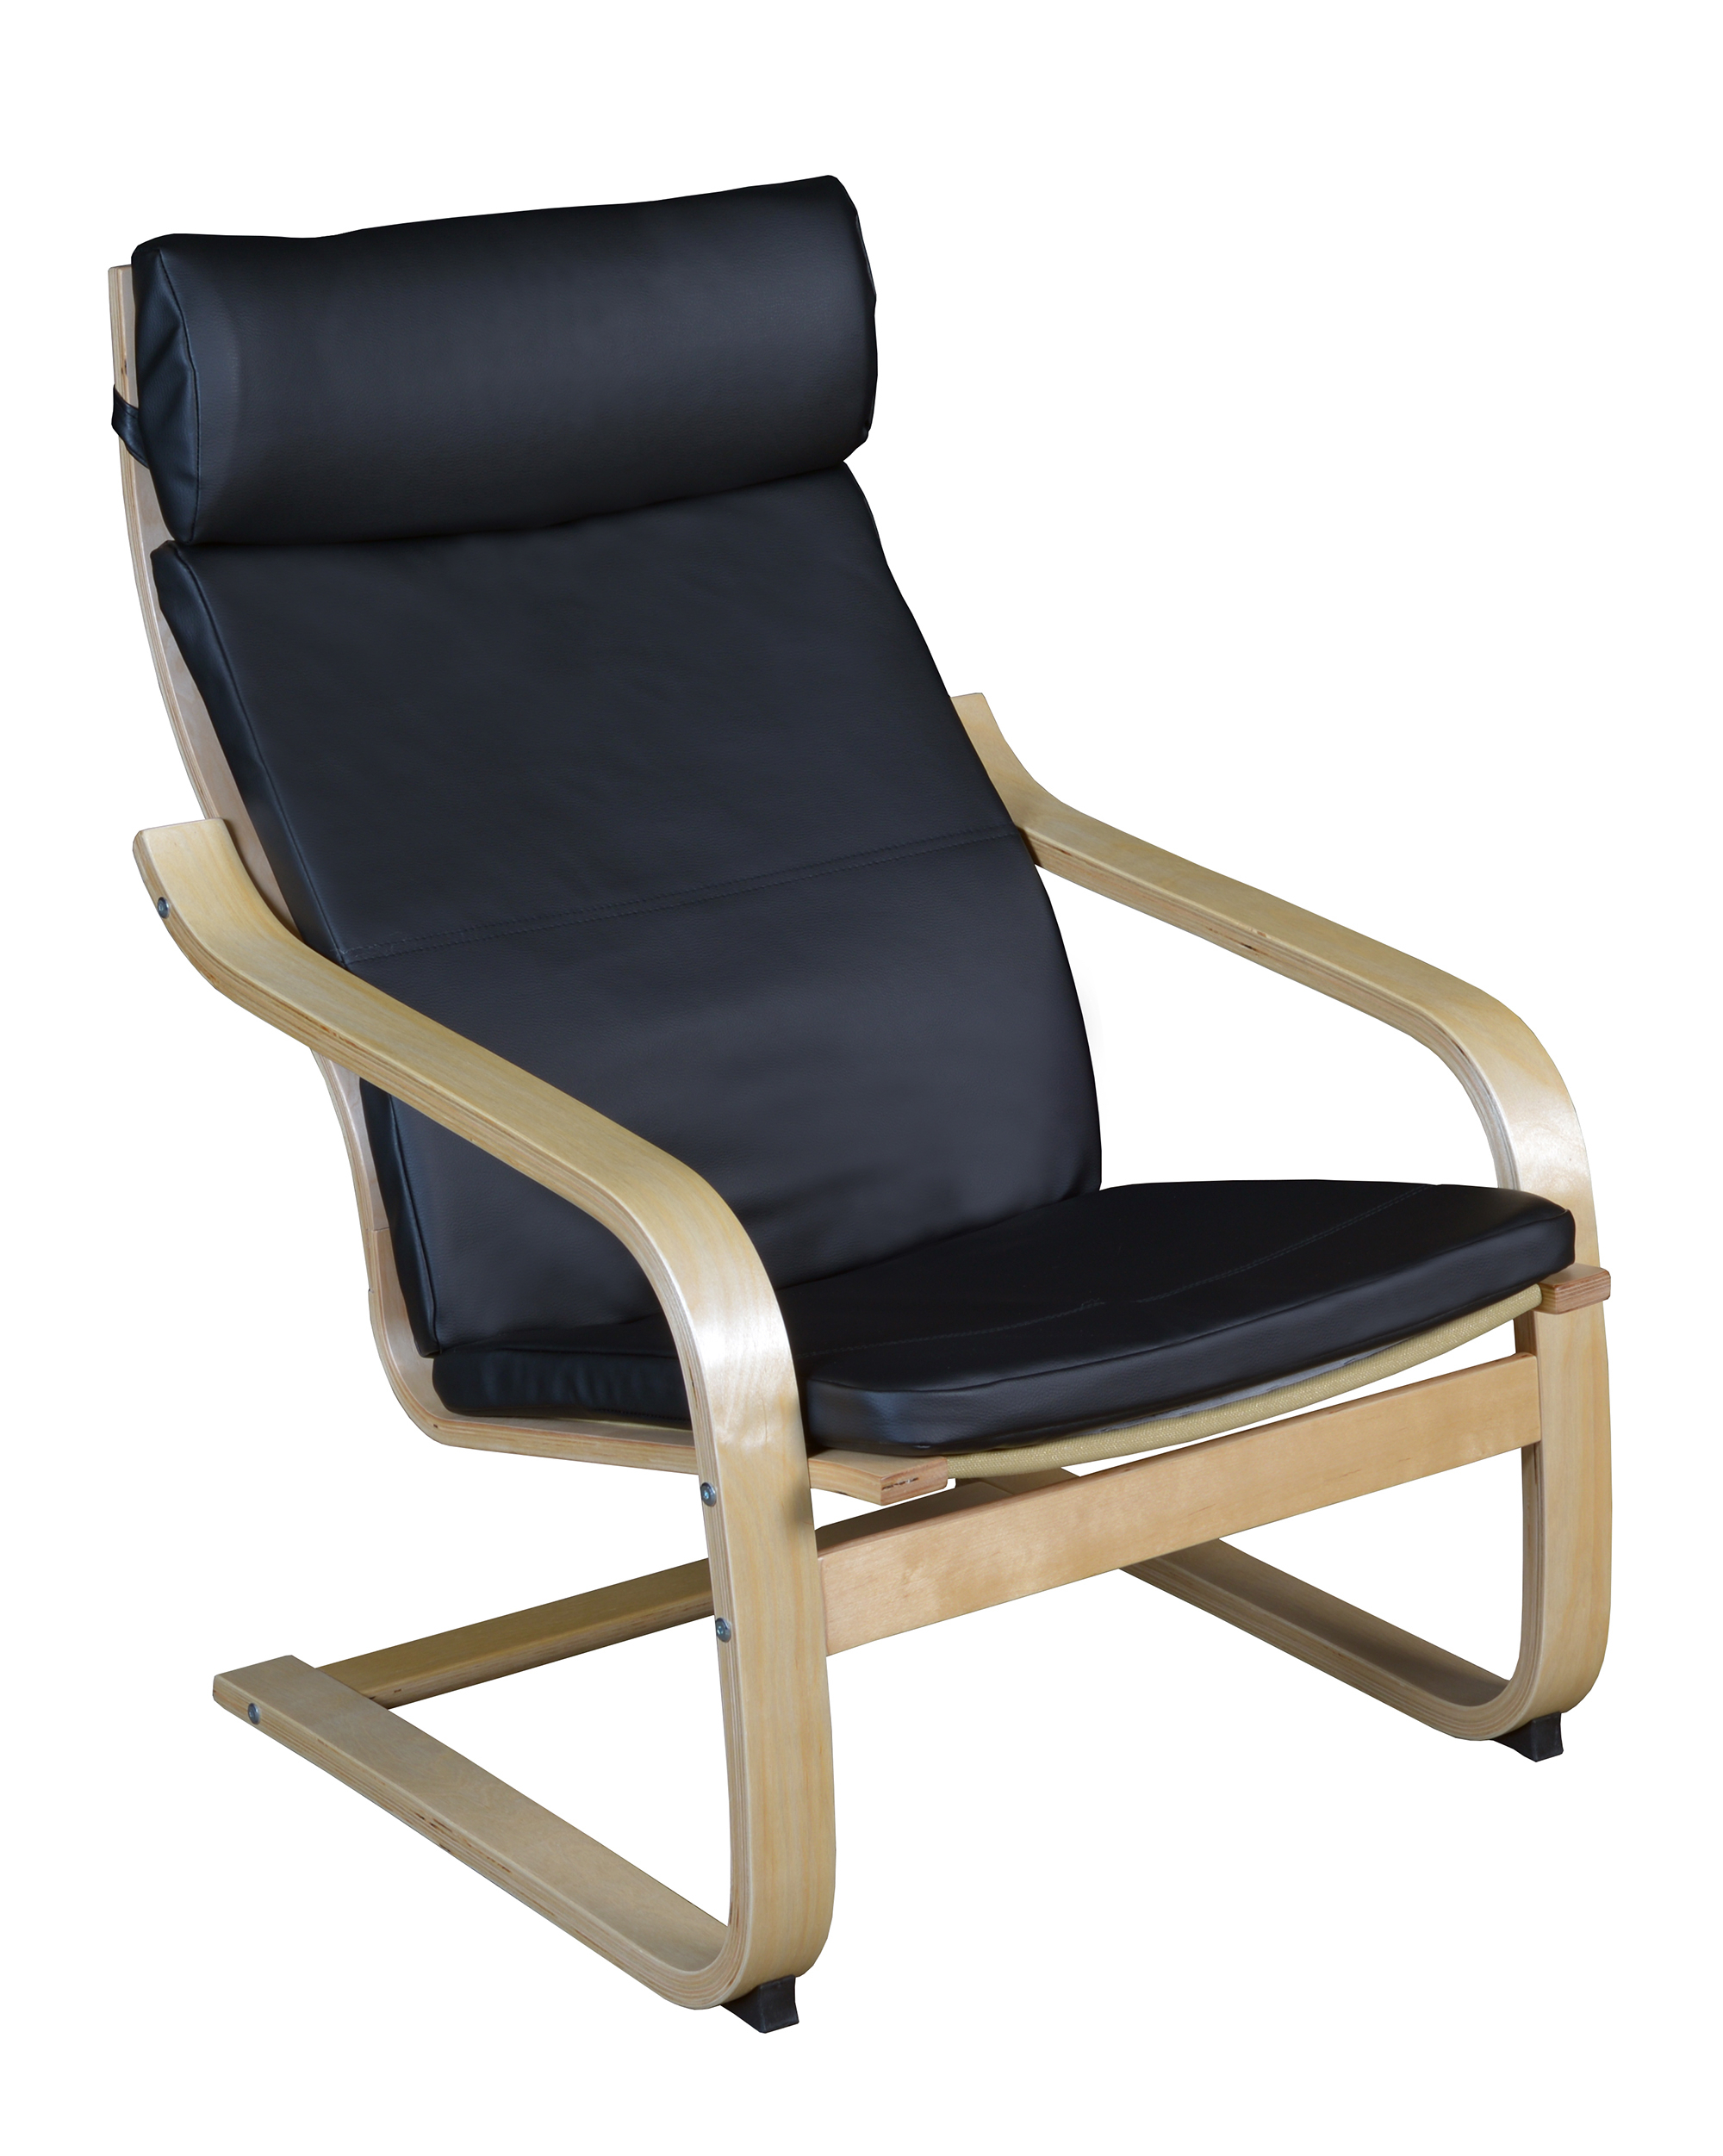 Popular Photo of Mia Bentwood Chairs